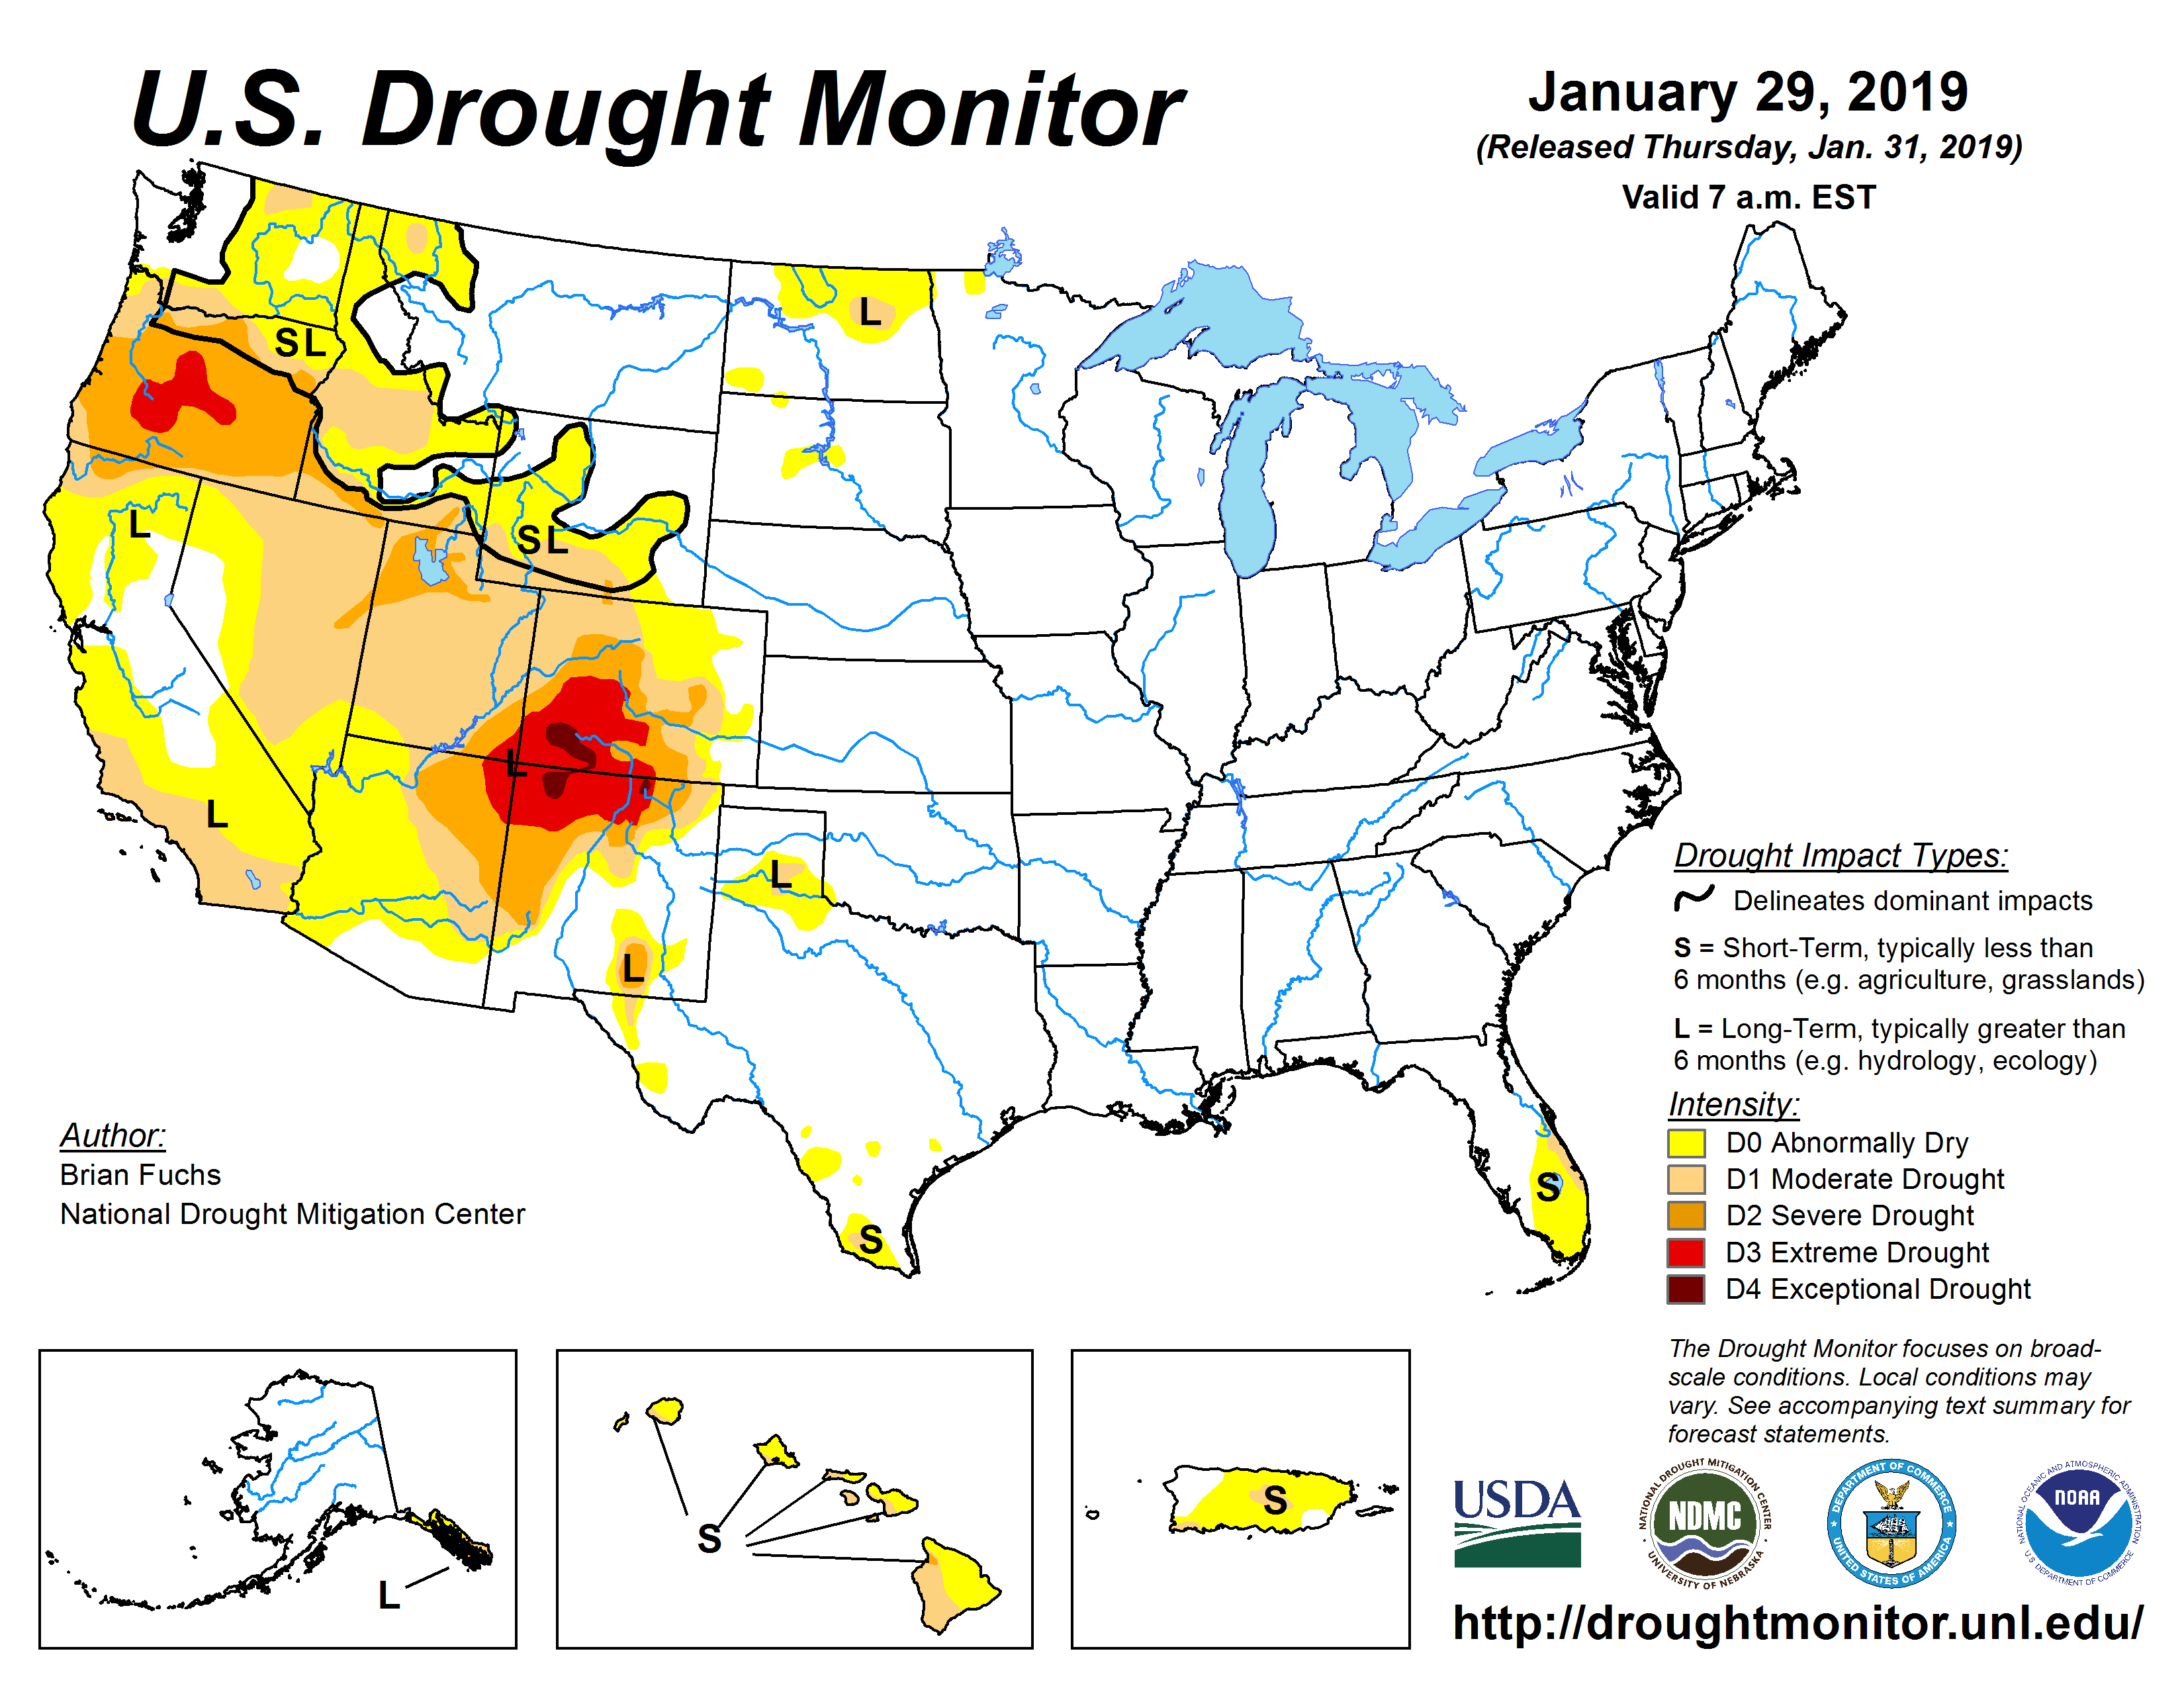 The U.S. Drought Monitor drought map valid January 29, 2019